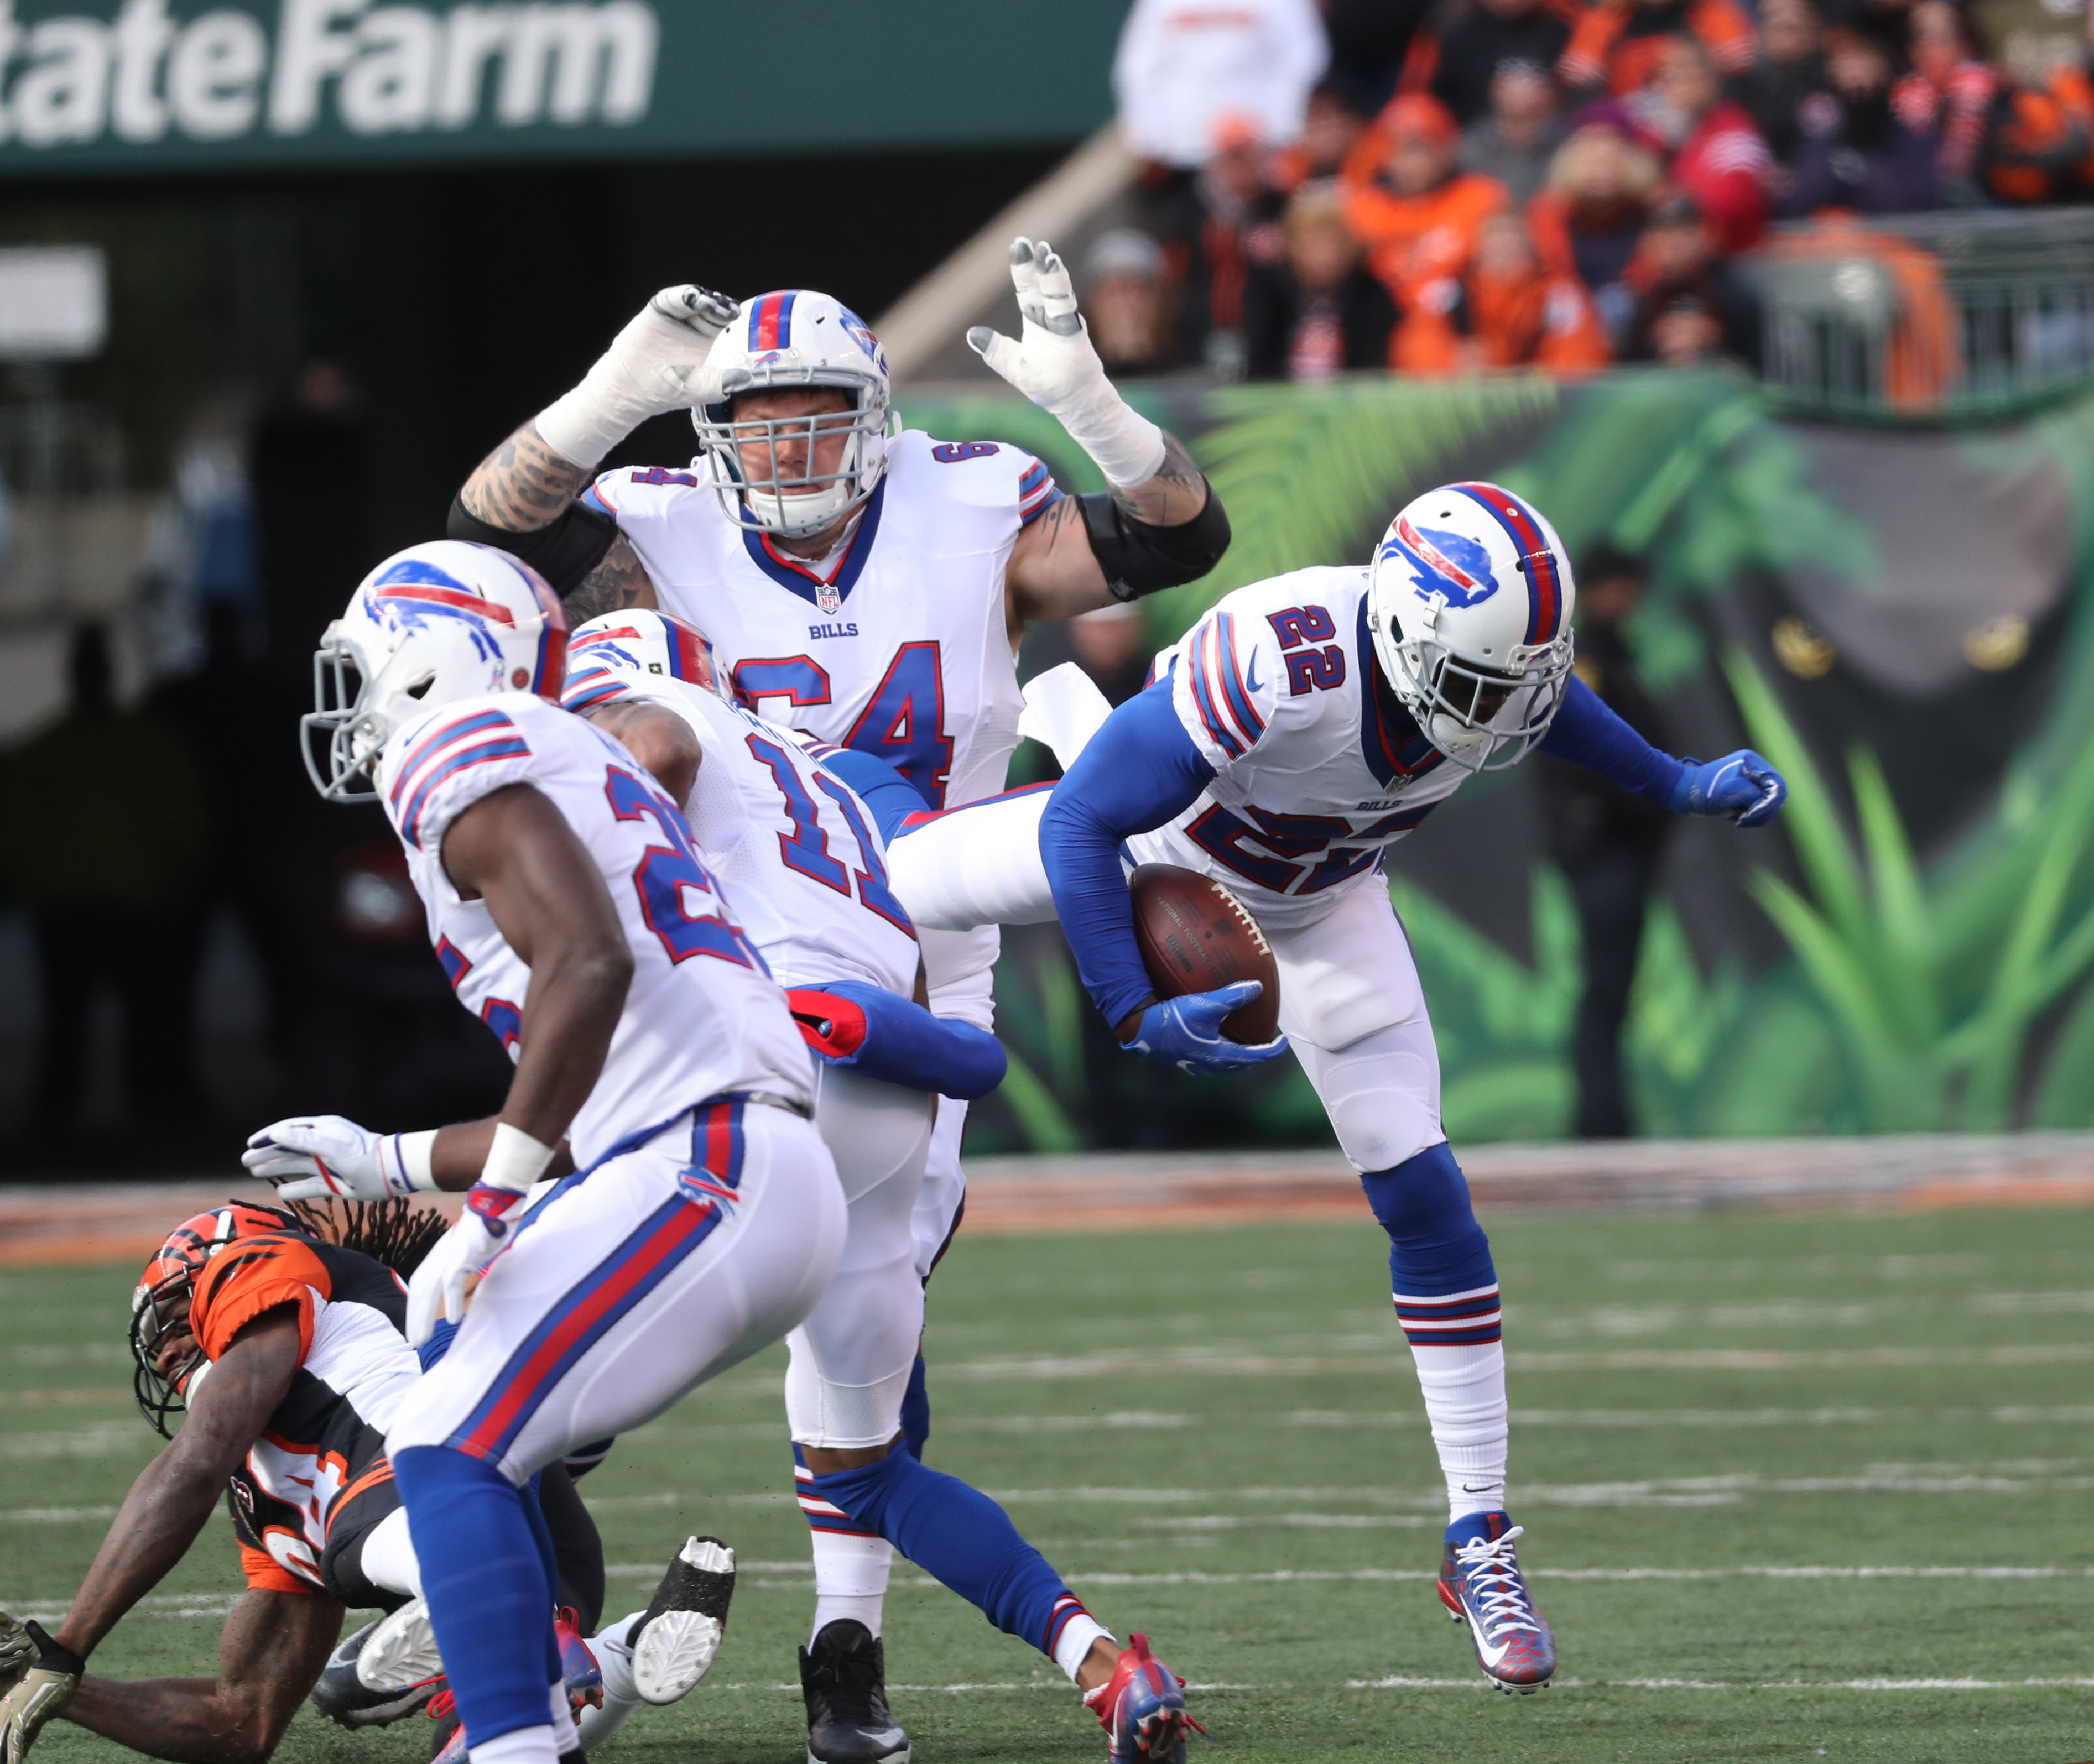 Buffalo Bills running back Reggie Bush (22) rushes for a first down in the first quarter. (James P. McCoy/Buffalo News)